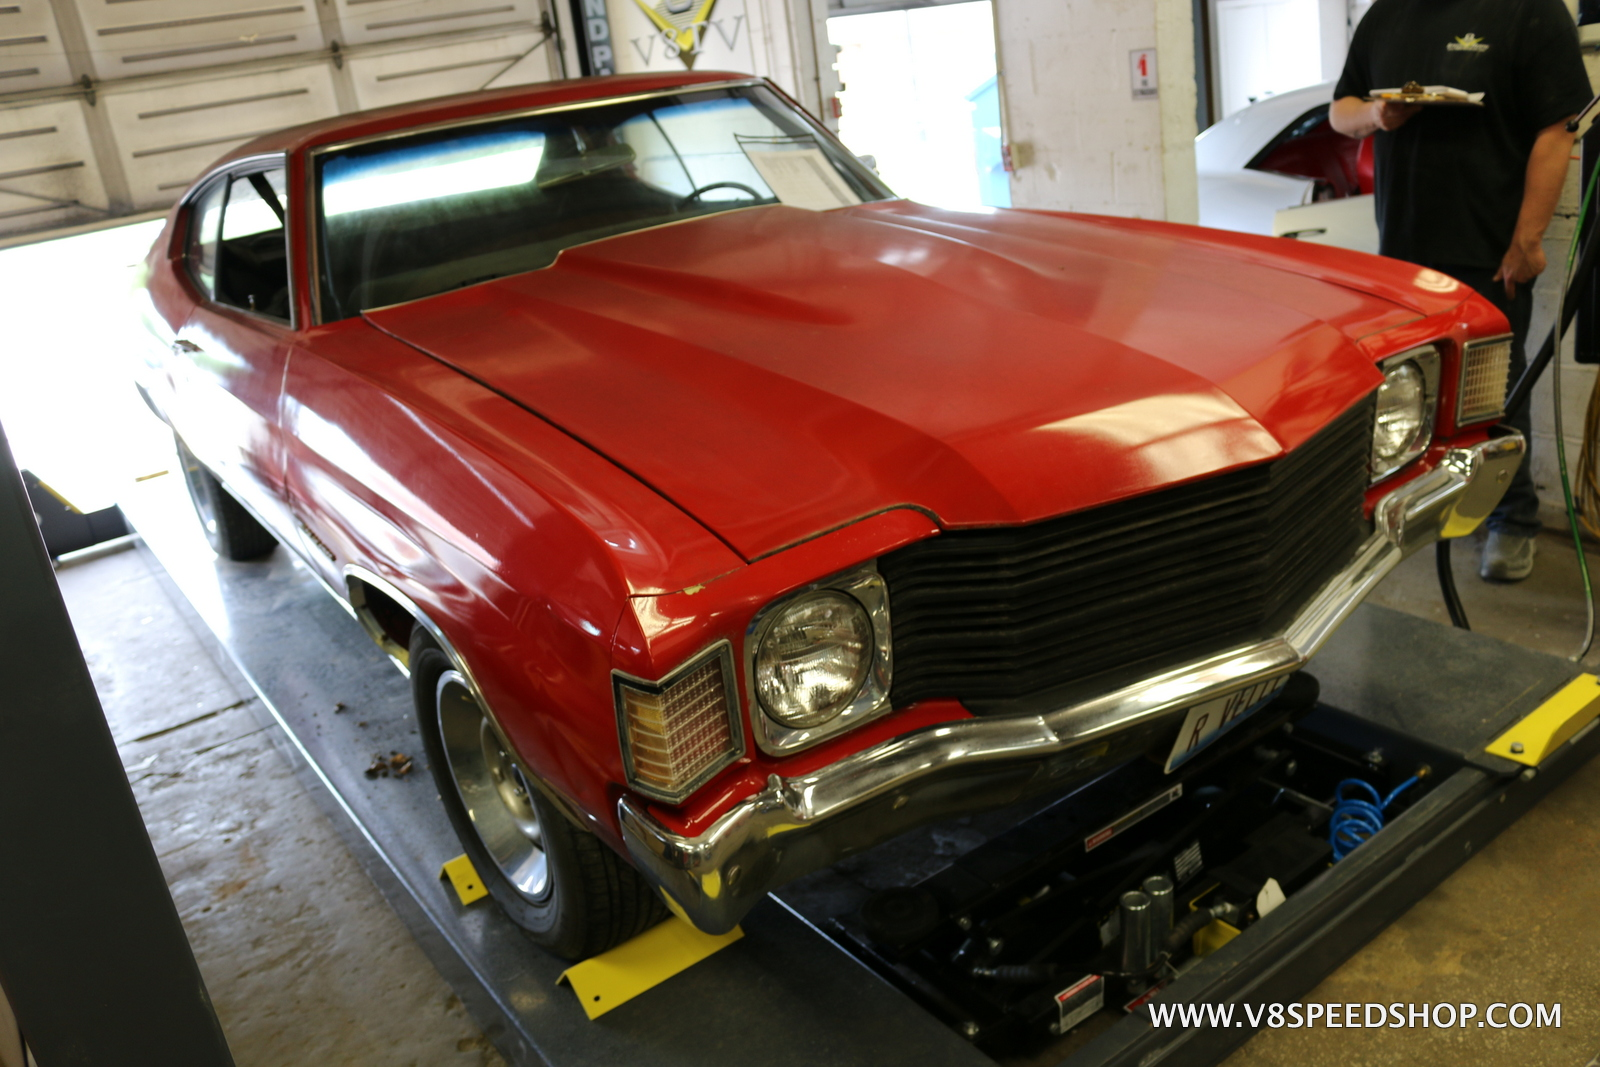 1972 Chevrolet Malibu 350 Restoration Photo Gallery